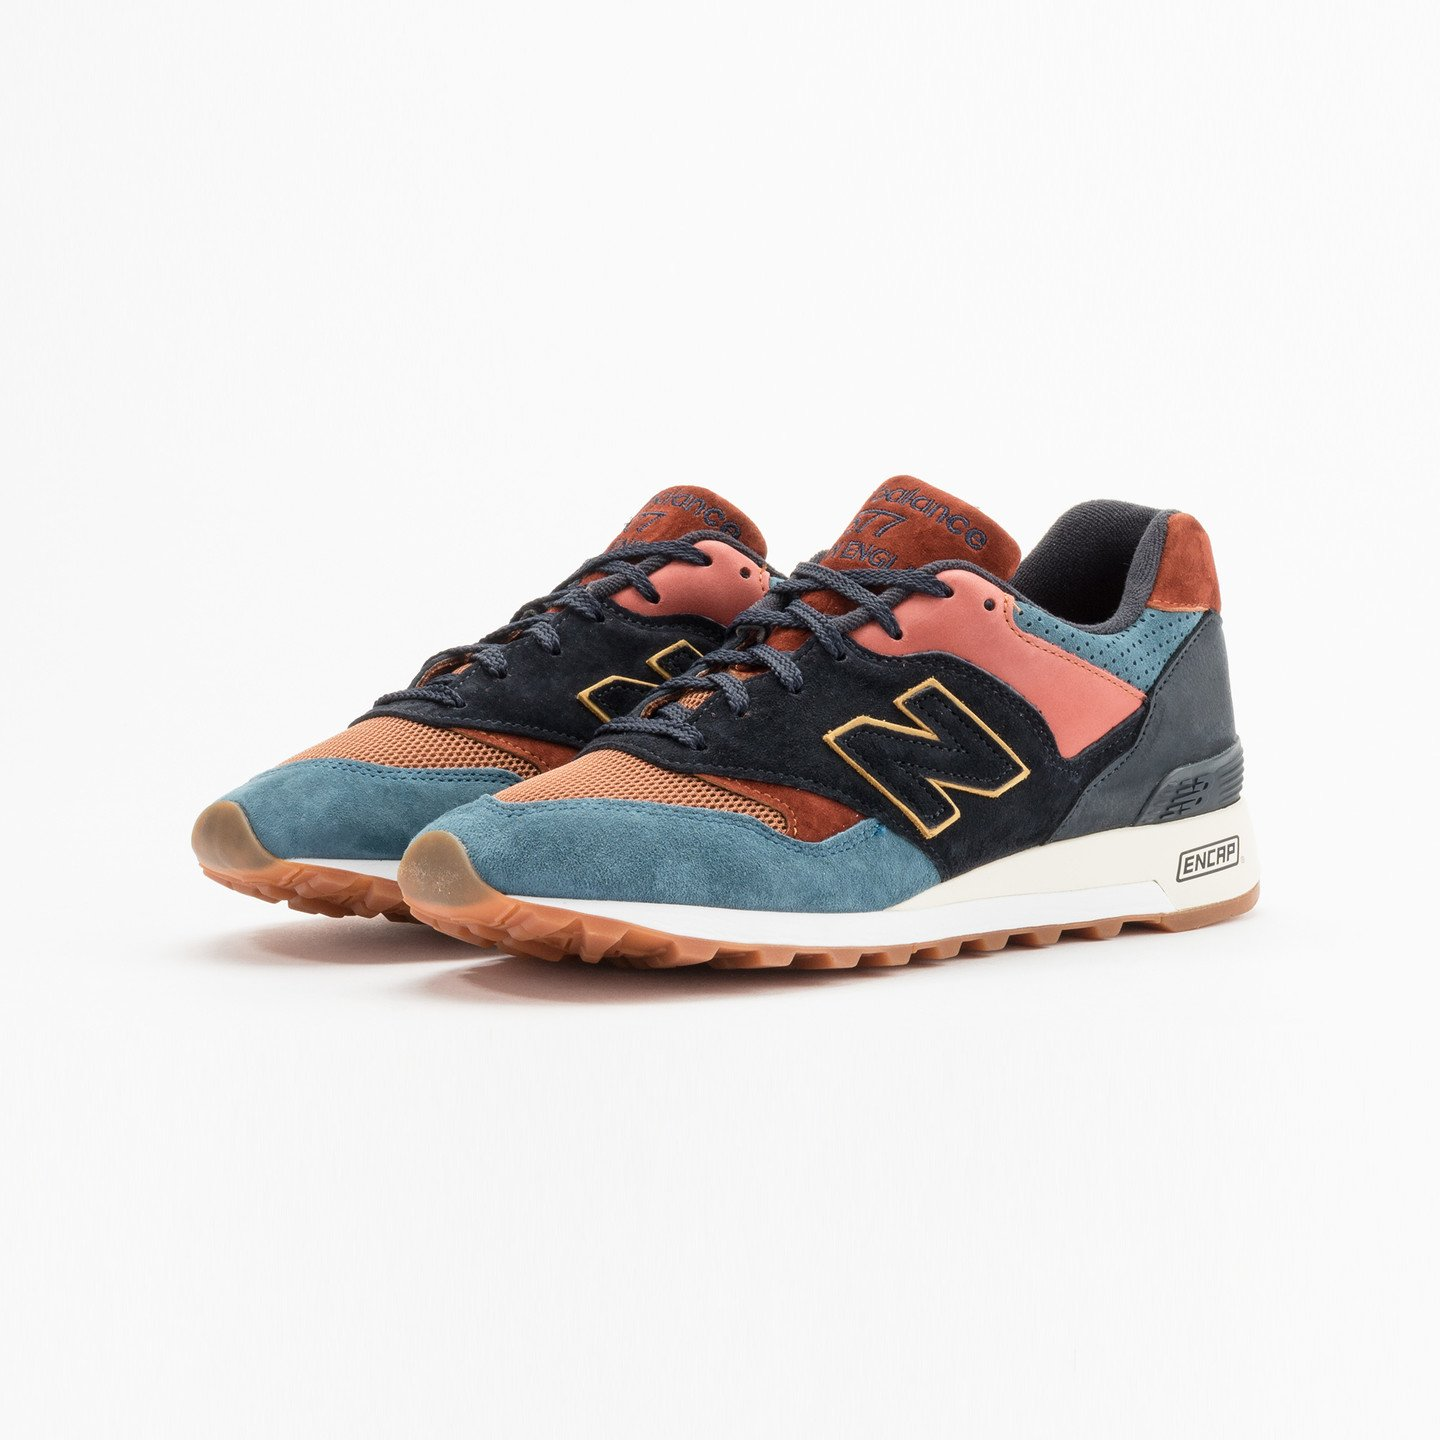 New Balance M577 YP Made in UK 'Yard Pack' Multicolor M577YP-44.5